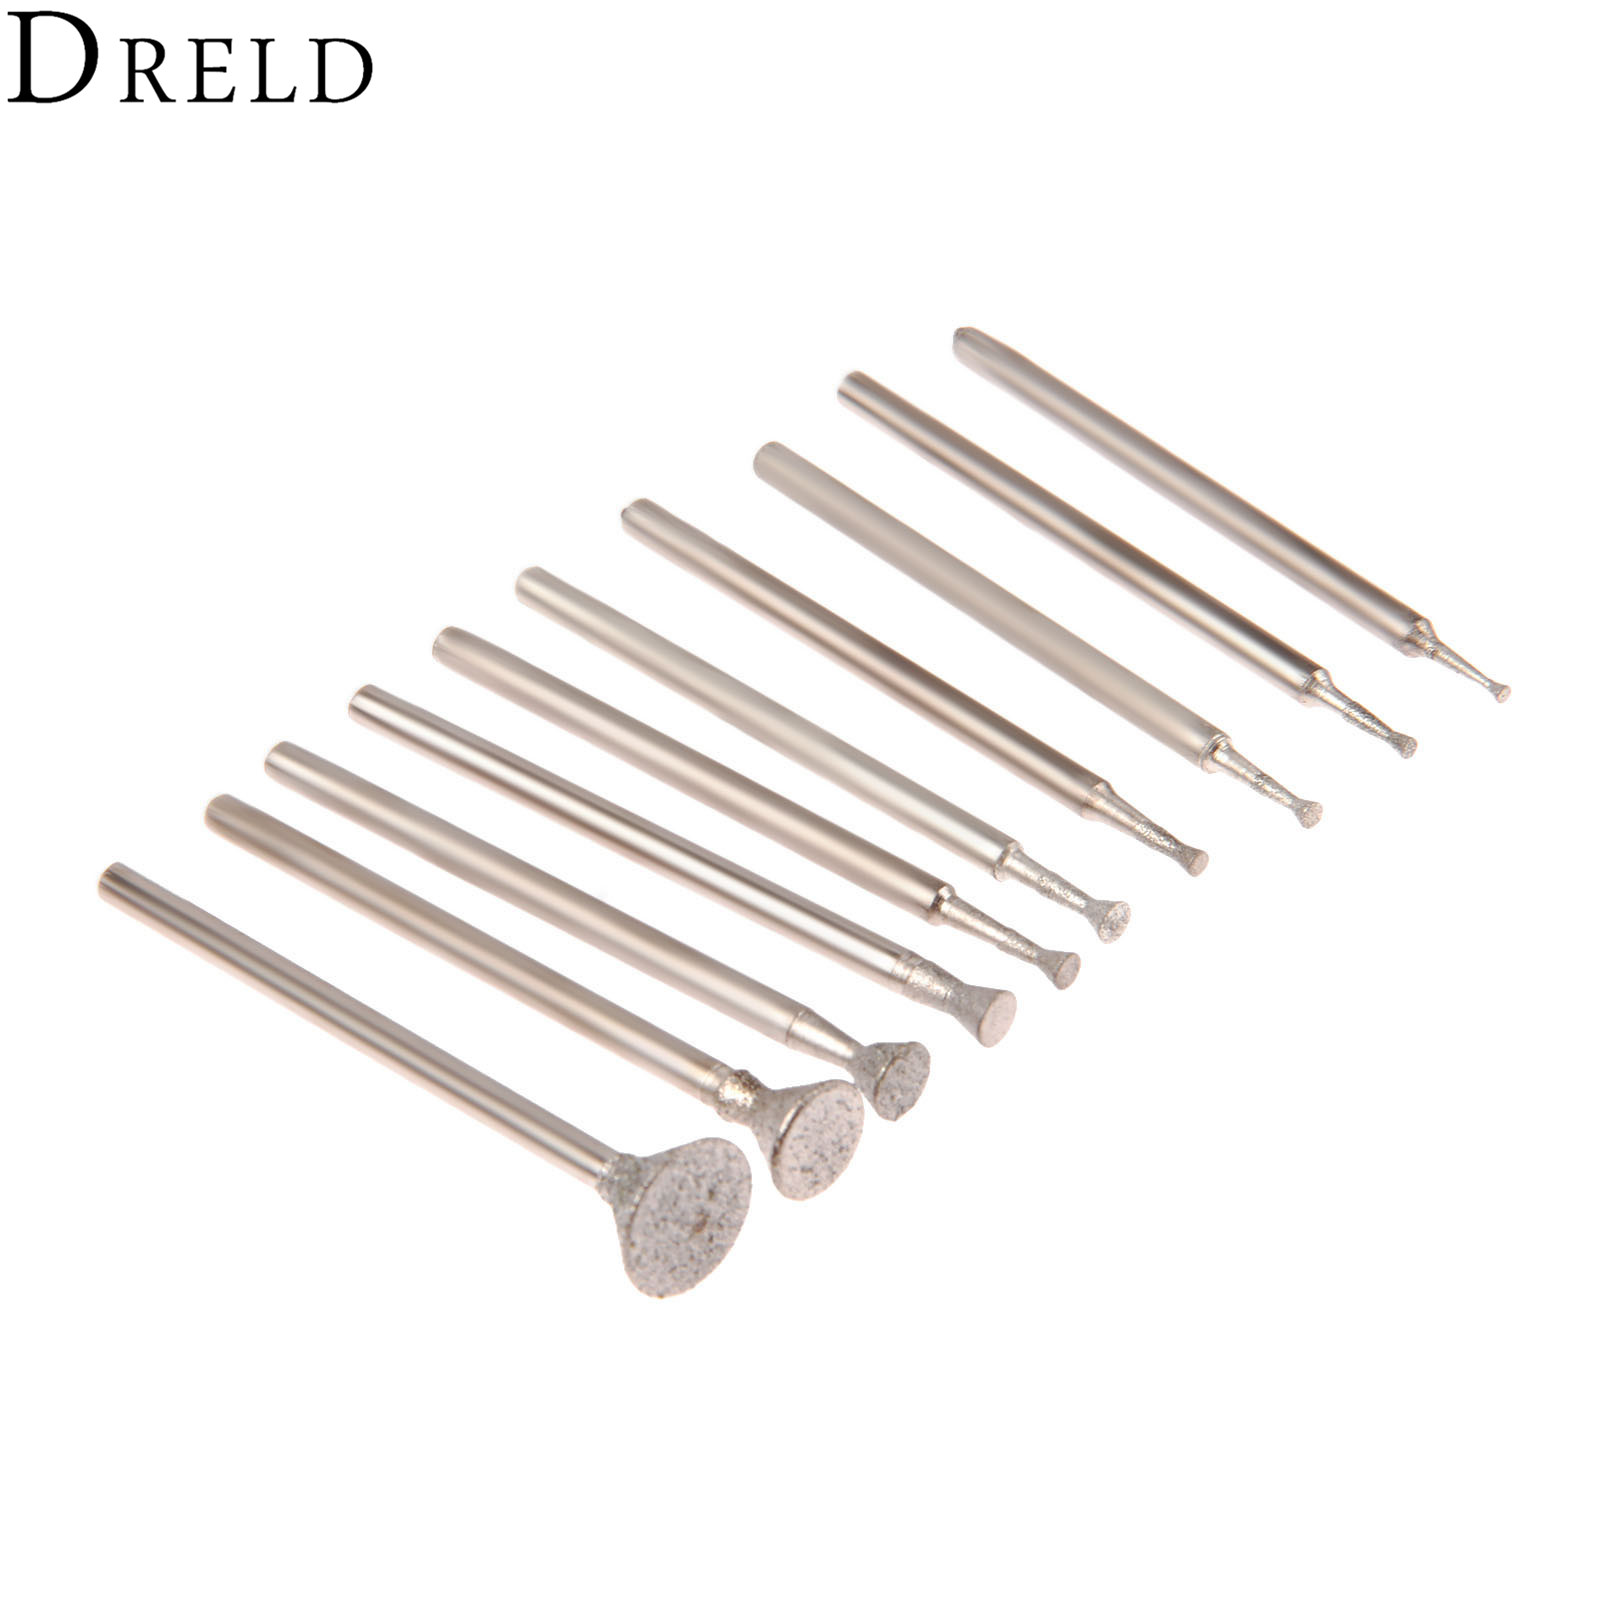 DRELD 10Pcs Dremel Accesories Drill Diamond Grinding Head Burrs Bits 2.35mm Shank Jade Stone Engraving Carving Polishing Tool